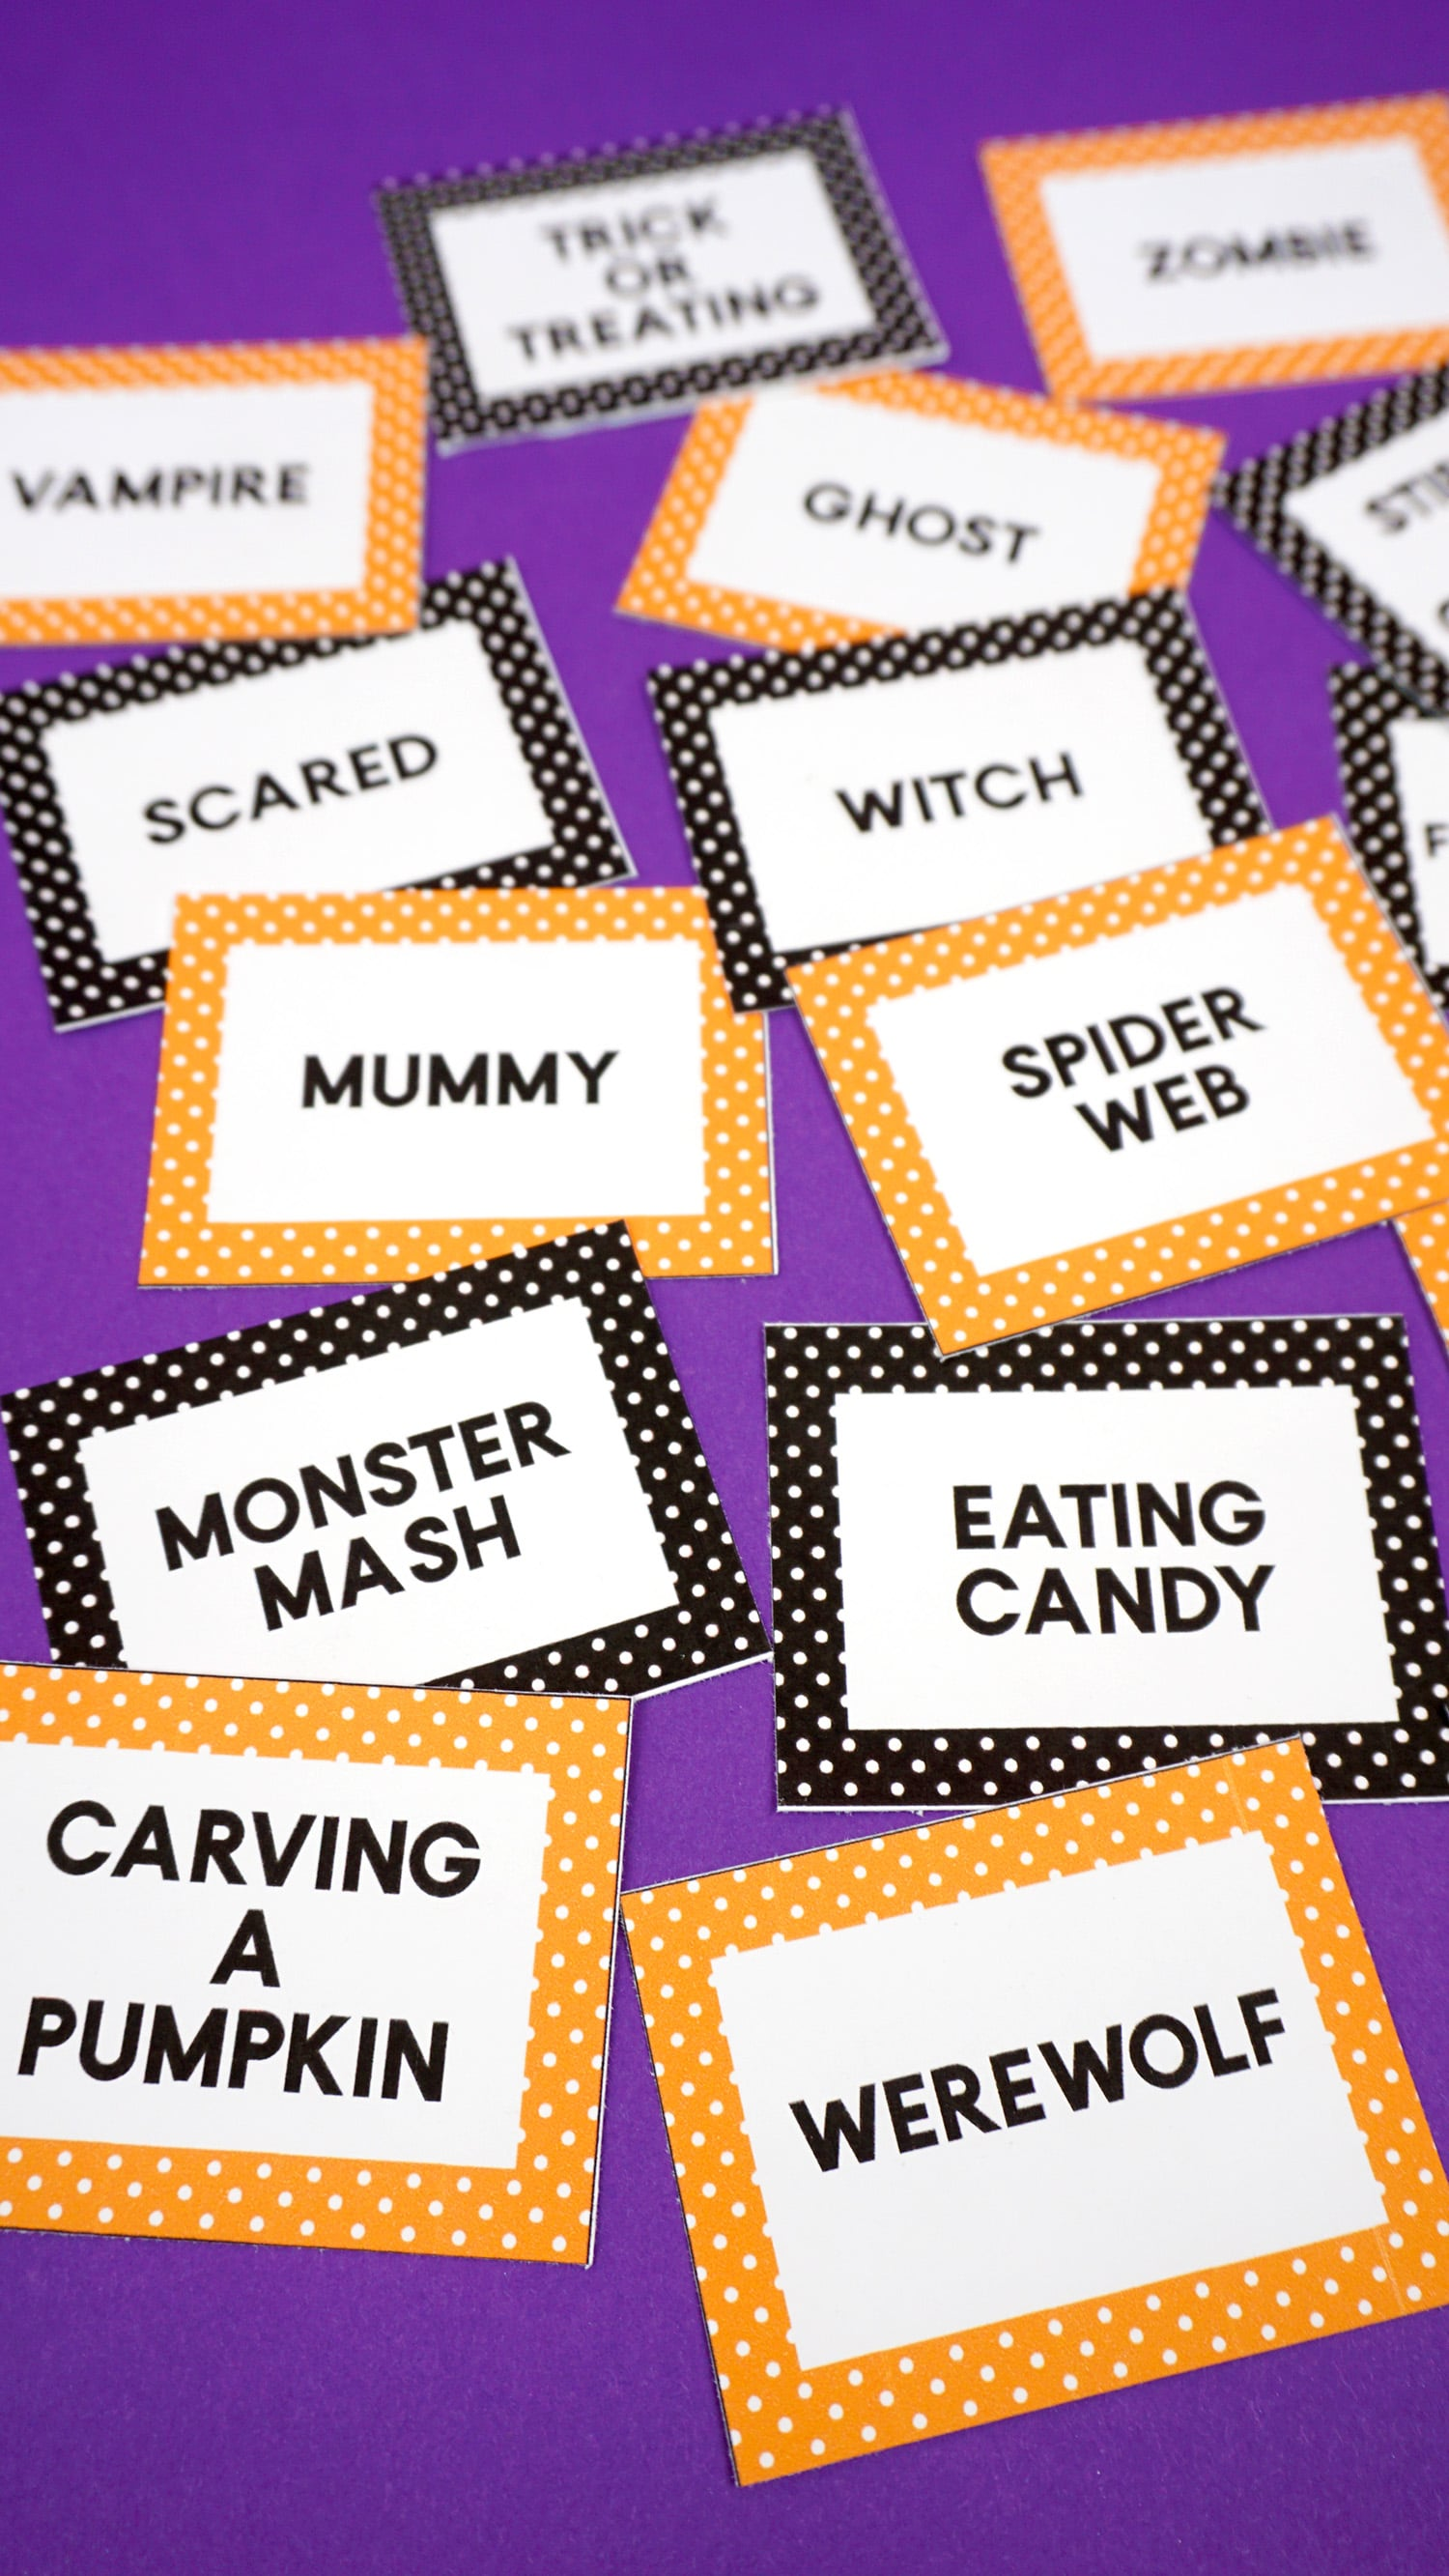 photograph relating to Halloween Charades Printable referred to as Halloween Charades Match Playing cards - Contentment is Home made